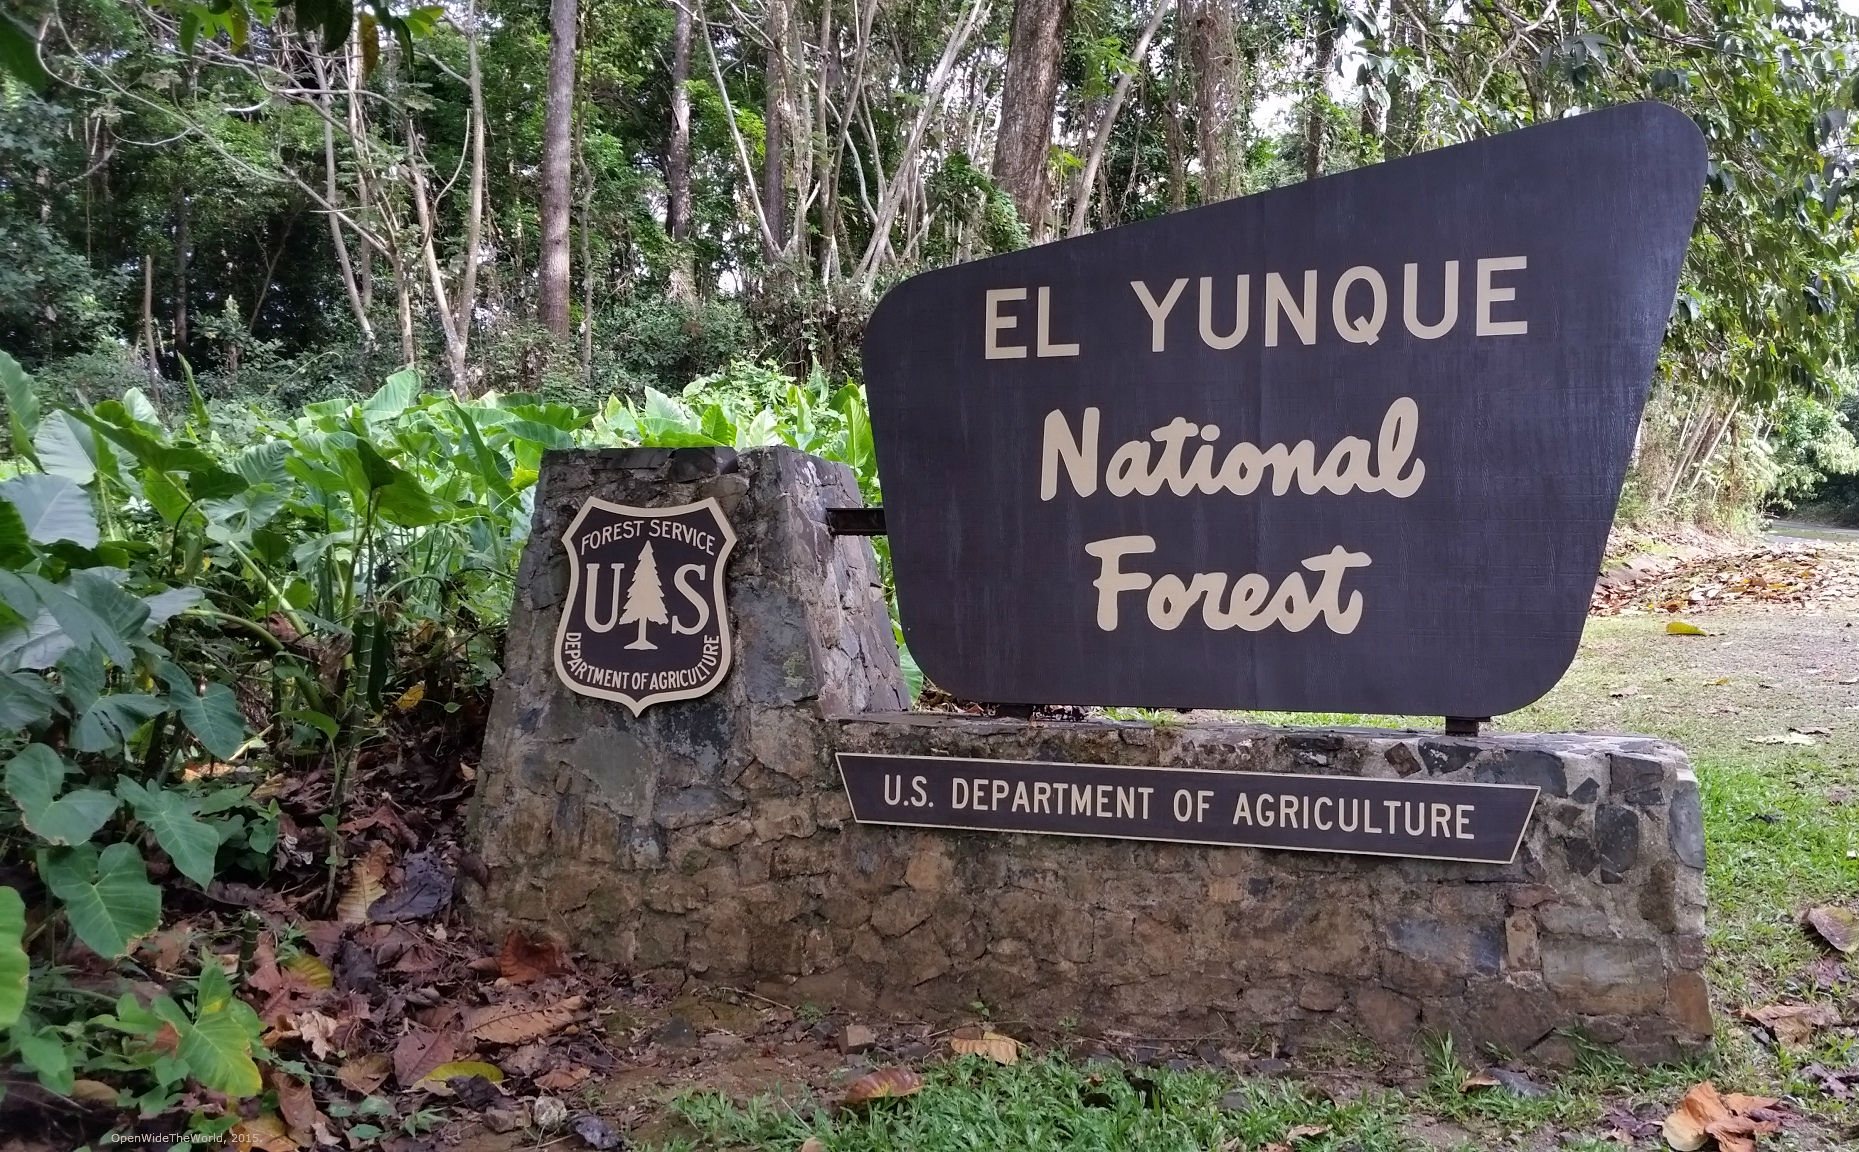 El Yunque is part of the U.S. National Parks system, and is home to the only rainforest in the system.